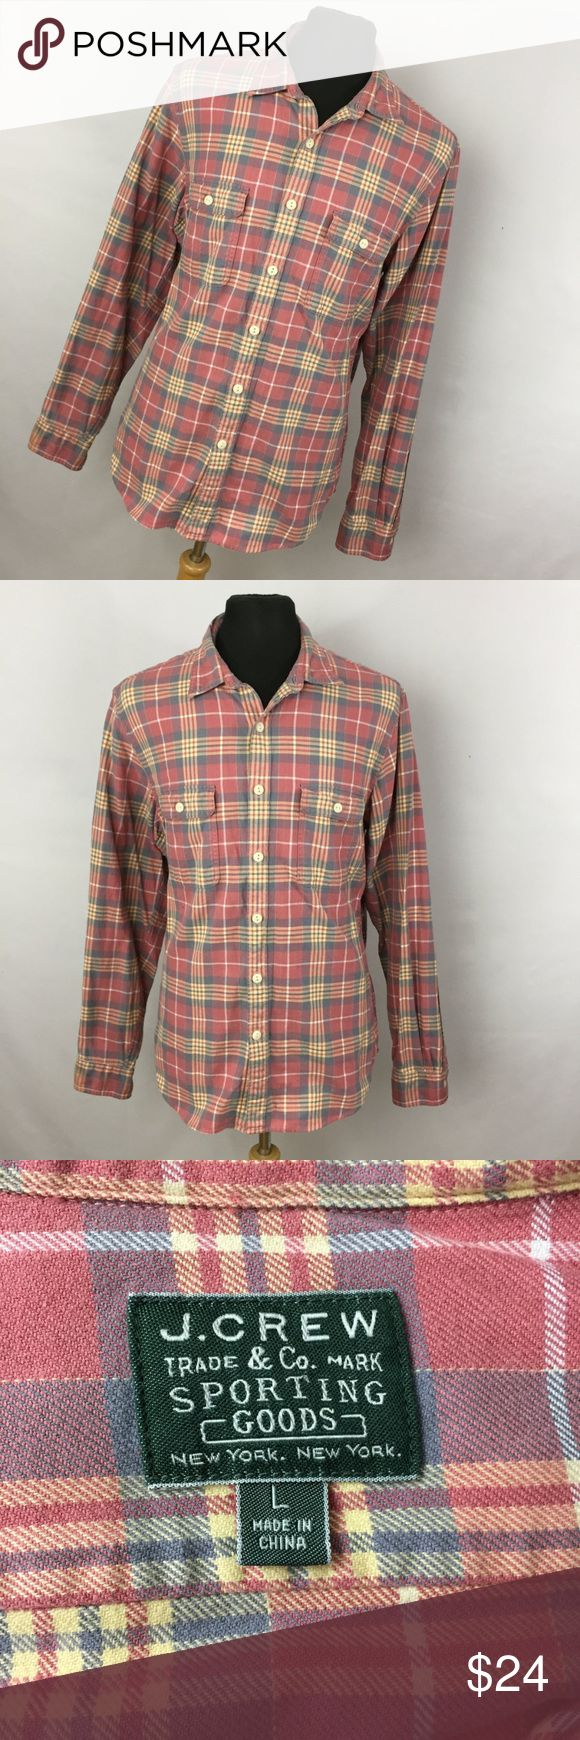 "J Crew L Large Pink Red Plaid Shirt Thick Cotton This is a great shirt.  It has a classic look and style.Chest measurement  - 48"" Length measurement - 32"" Sleeve Length measurement - Long SleeveJ Crew L Large Pink Red Plaid Shirt Thick Cotton Sporting Goods Men's J. Crew Shirts Casual Button Down Shirts"